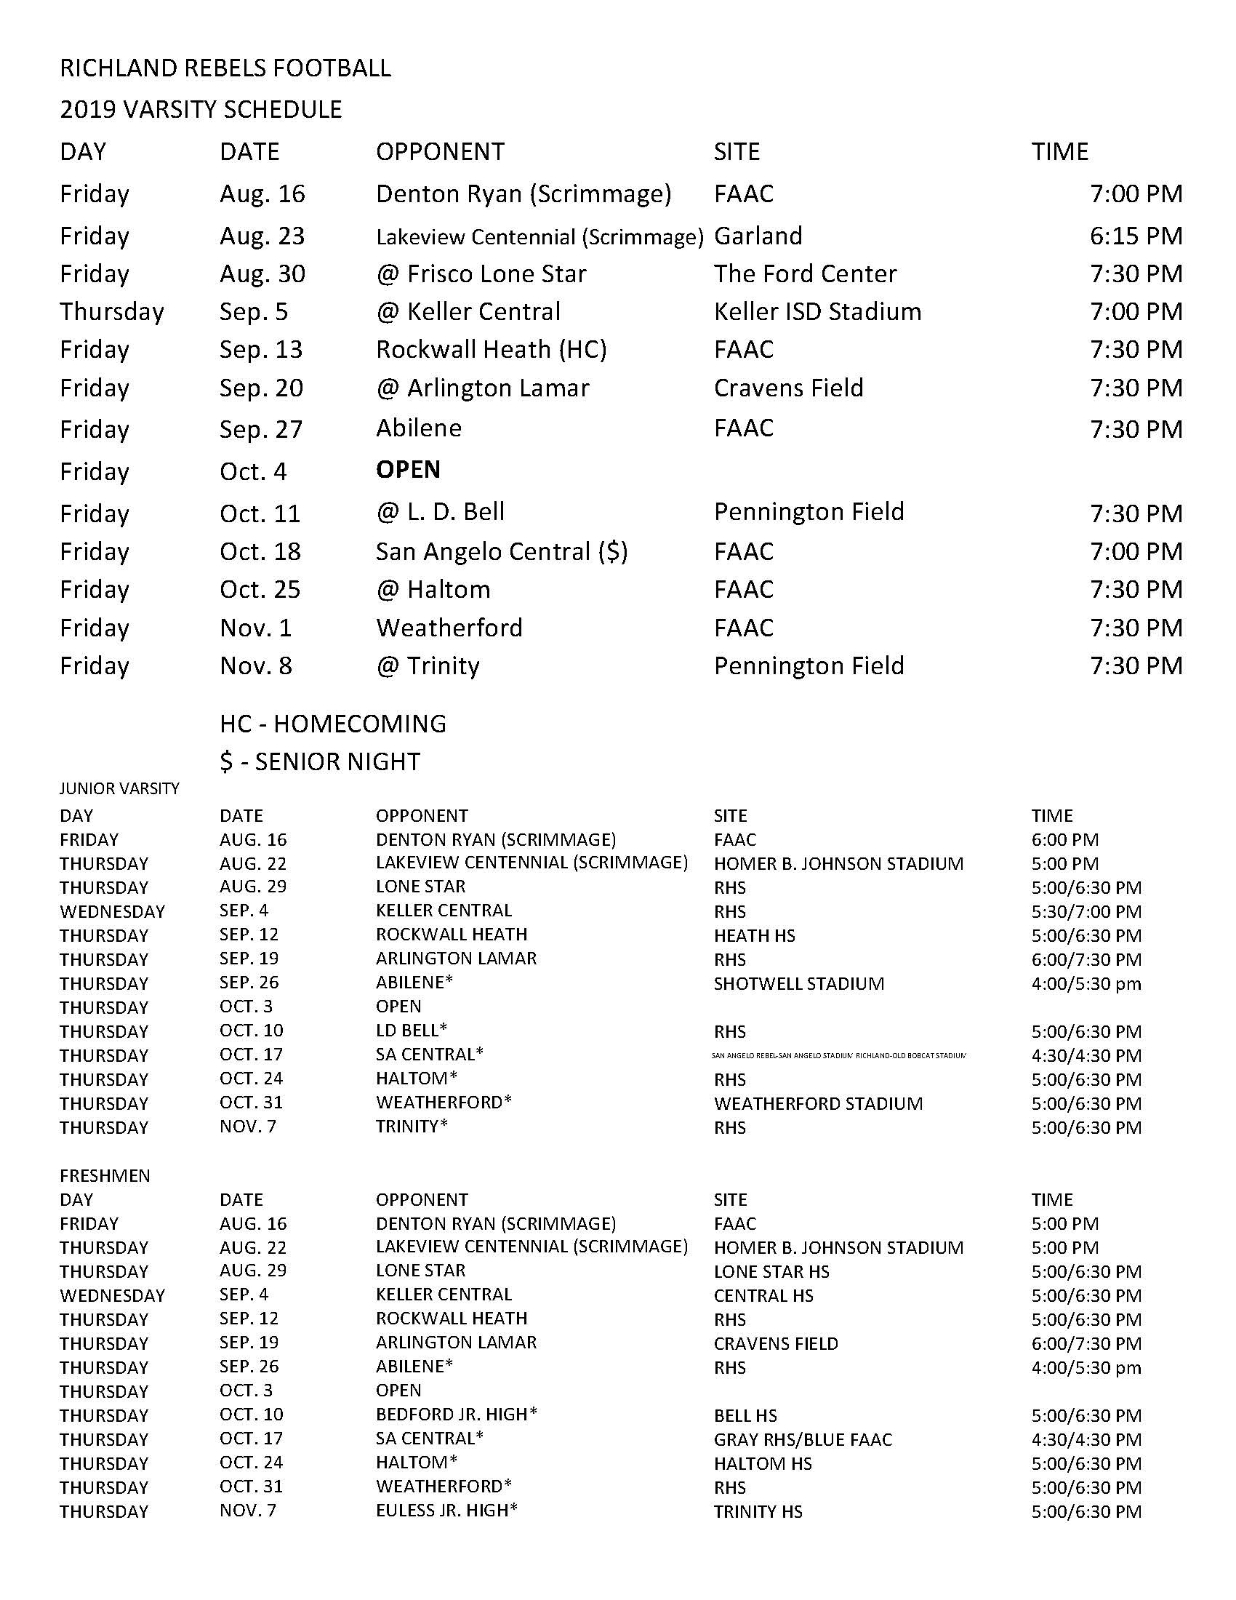 Richland Football: Corrected Master Schedule